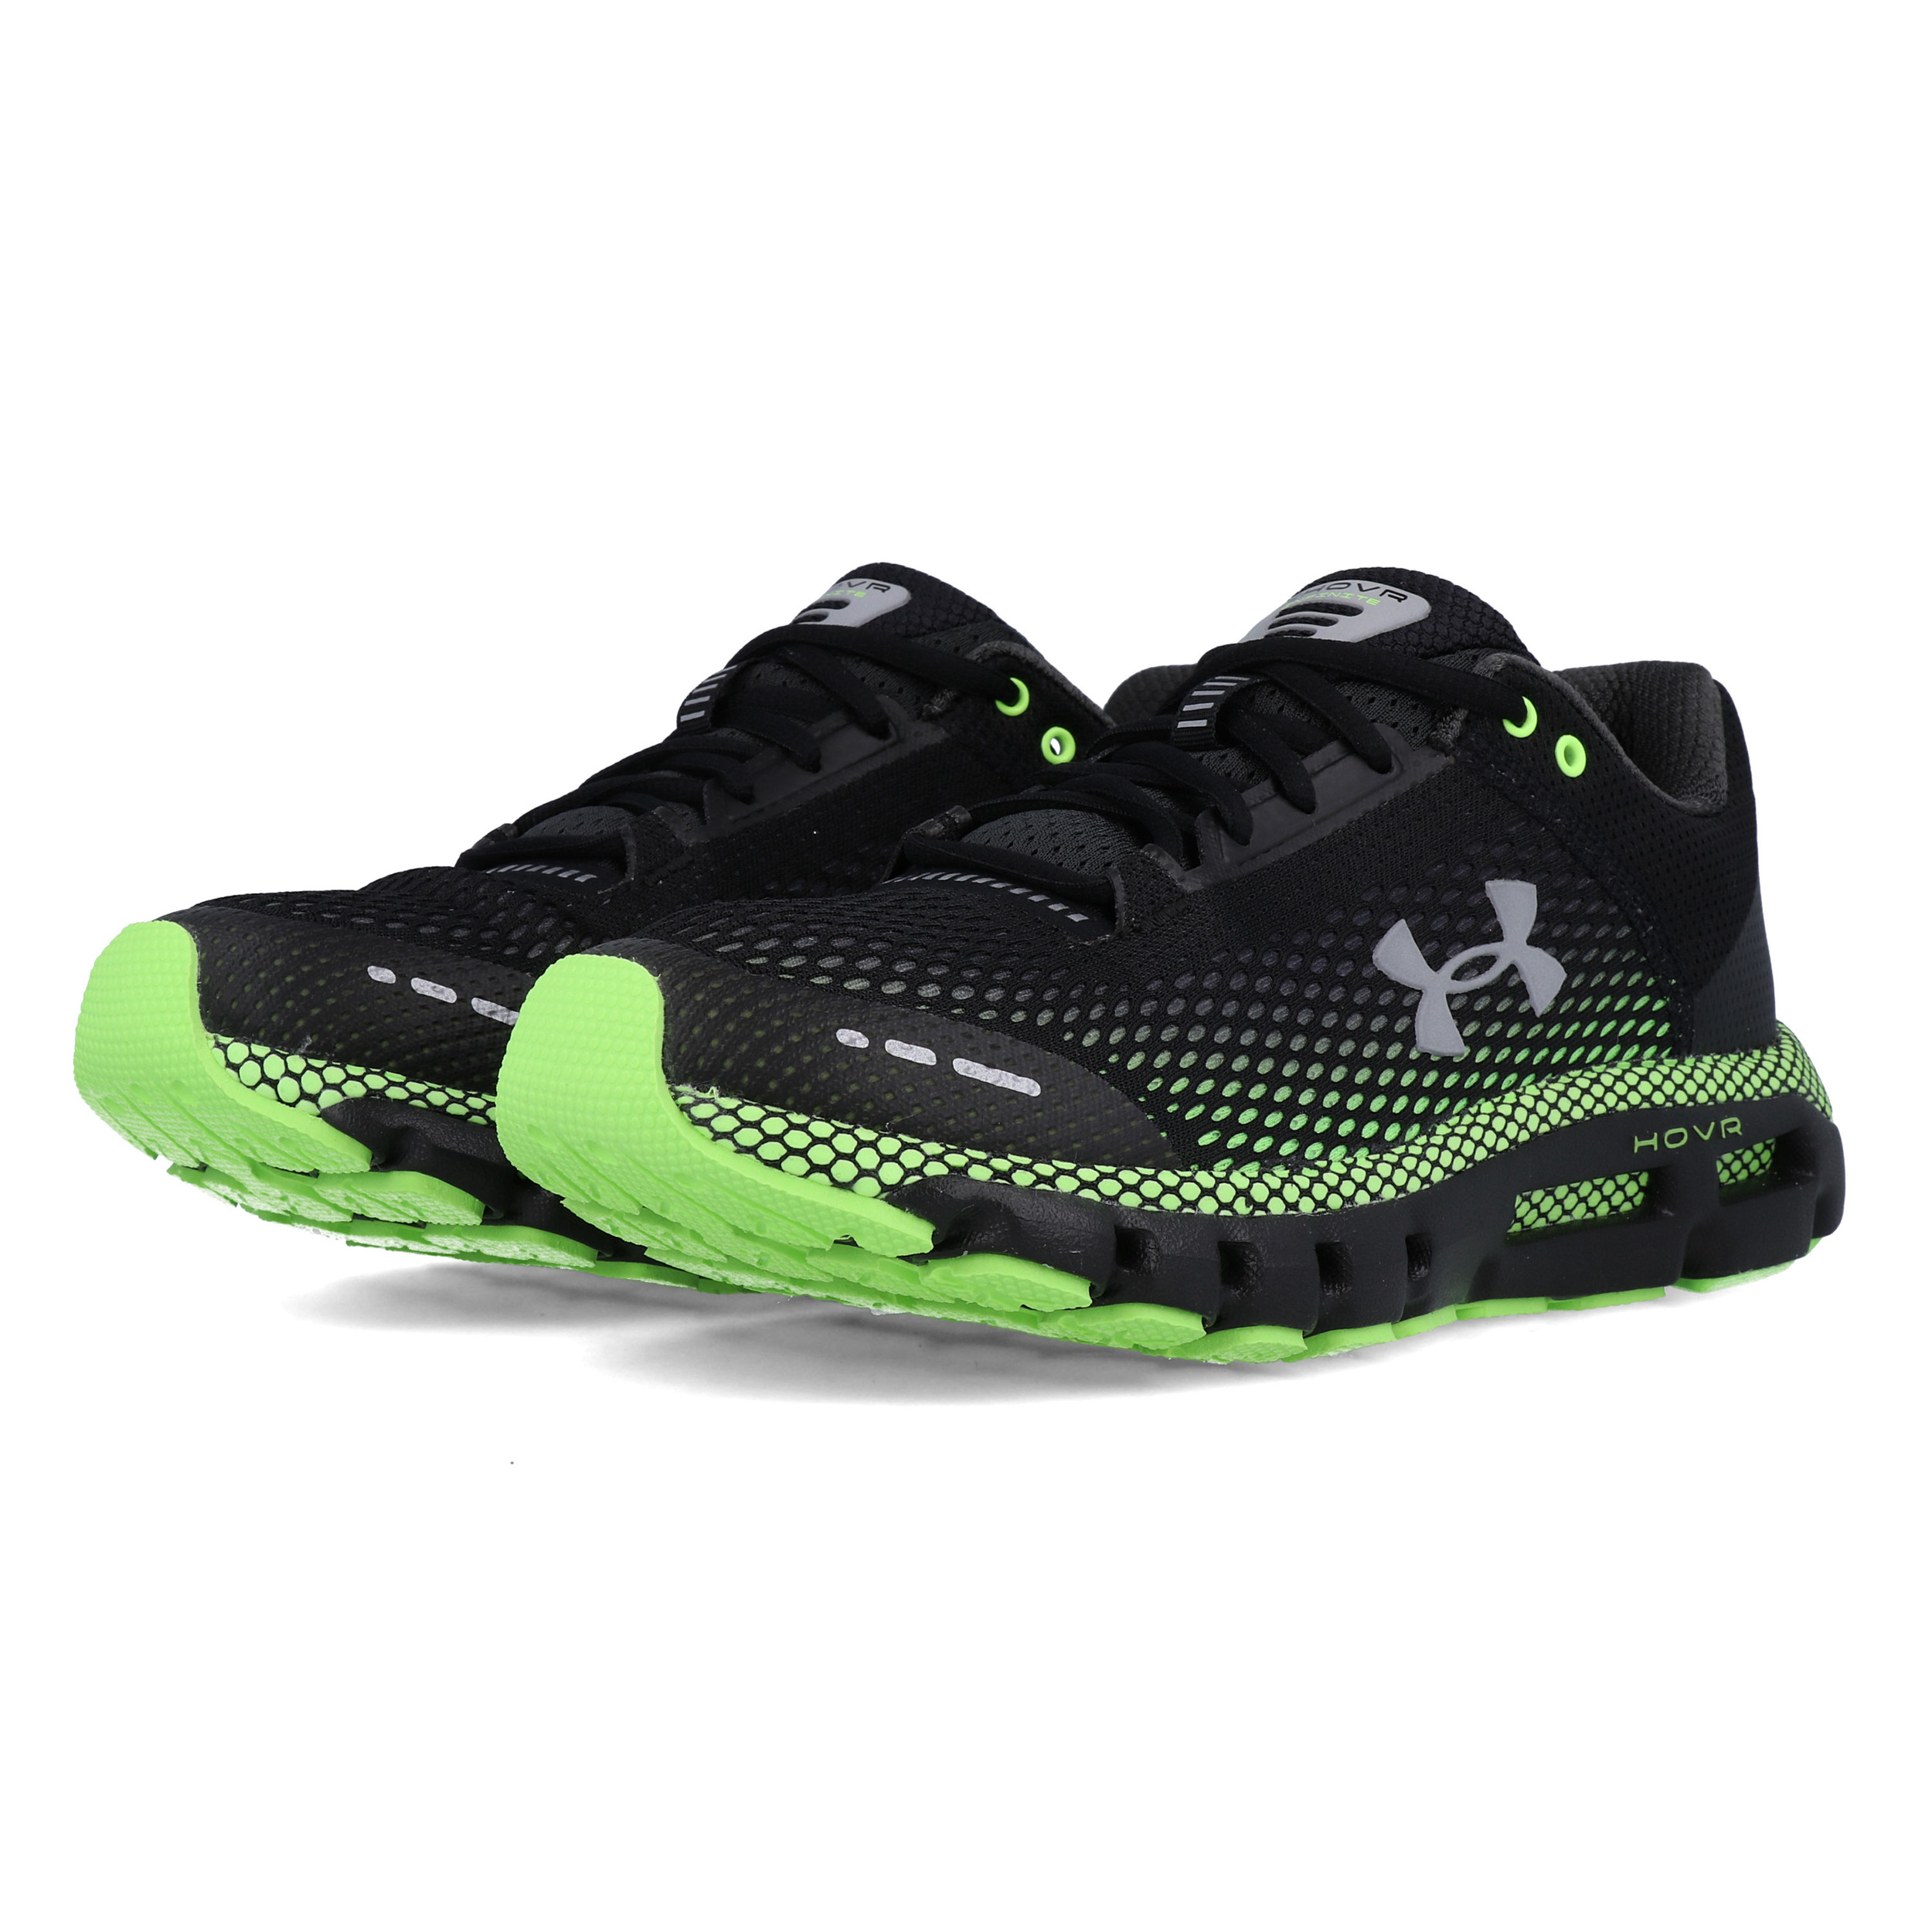 Under Armour Mens HOVR Infinite Running Shoes Trainers Sneakers Black Sports